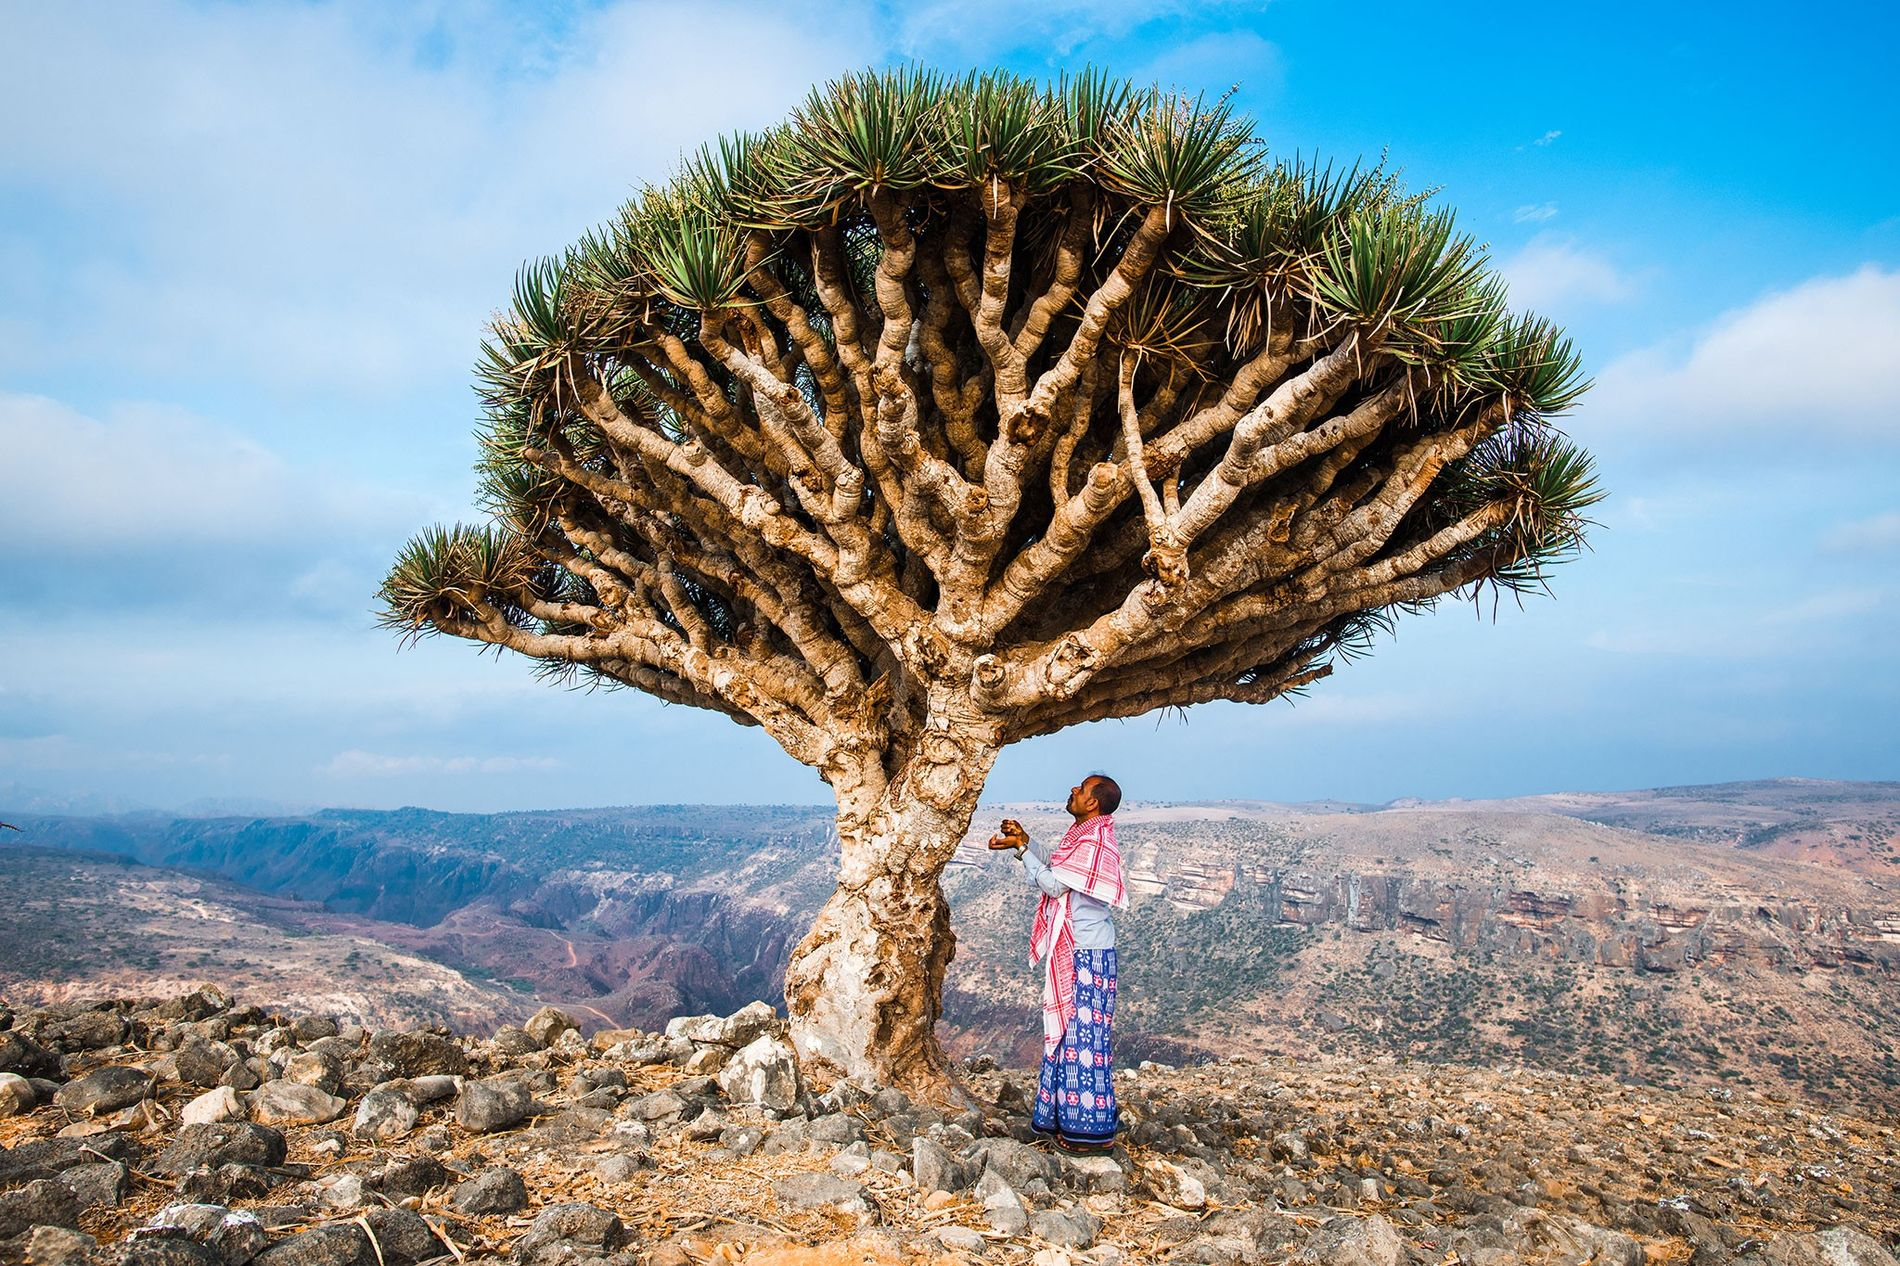 The Socotra dragon's blood tree, Dracaena cinnabari, can live a thousand years. Its bright red resin ...